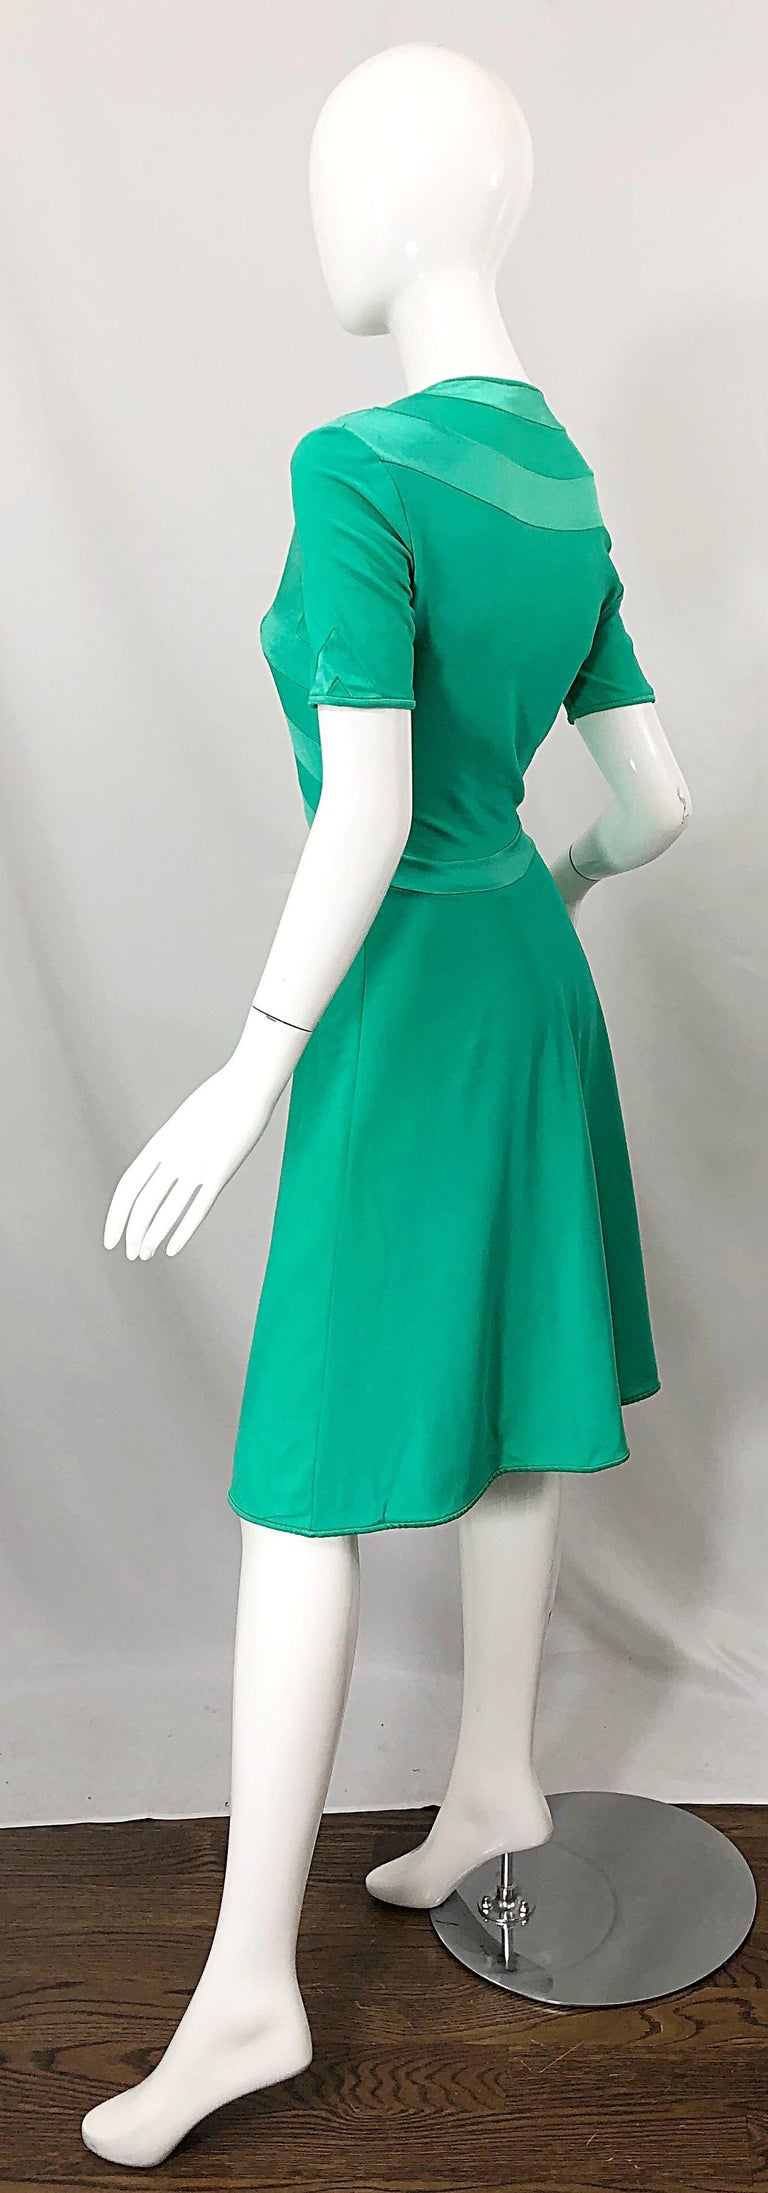 Giorgio di Sant Angelo Kelly Green Slinky Bodysuit Vintage 70s Jersey Dress For Sale 10